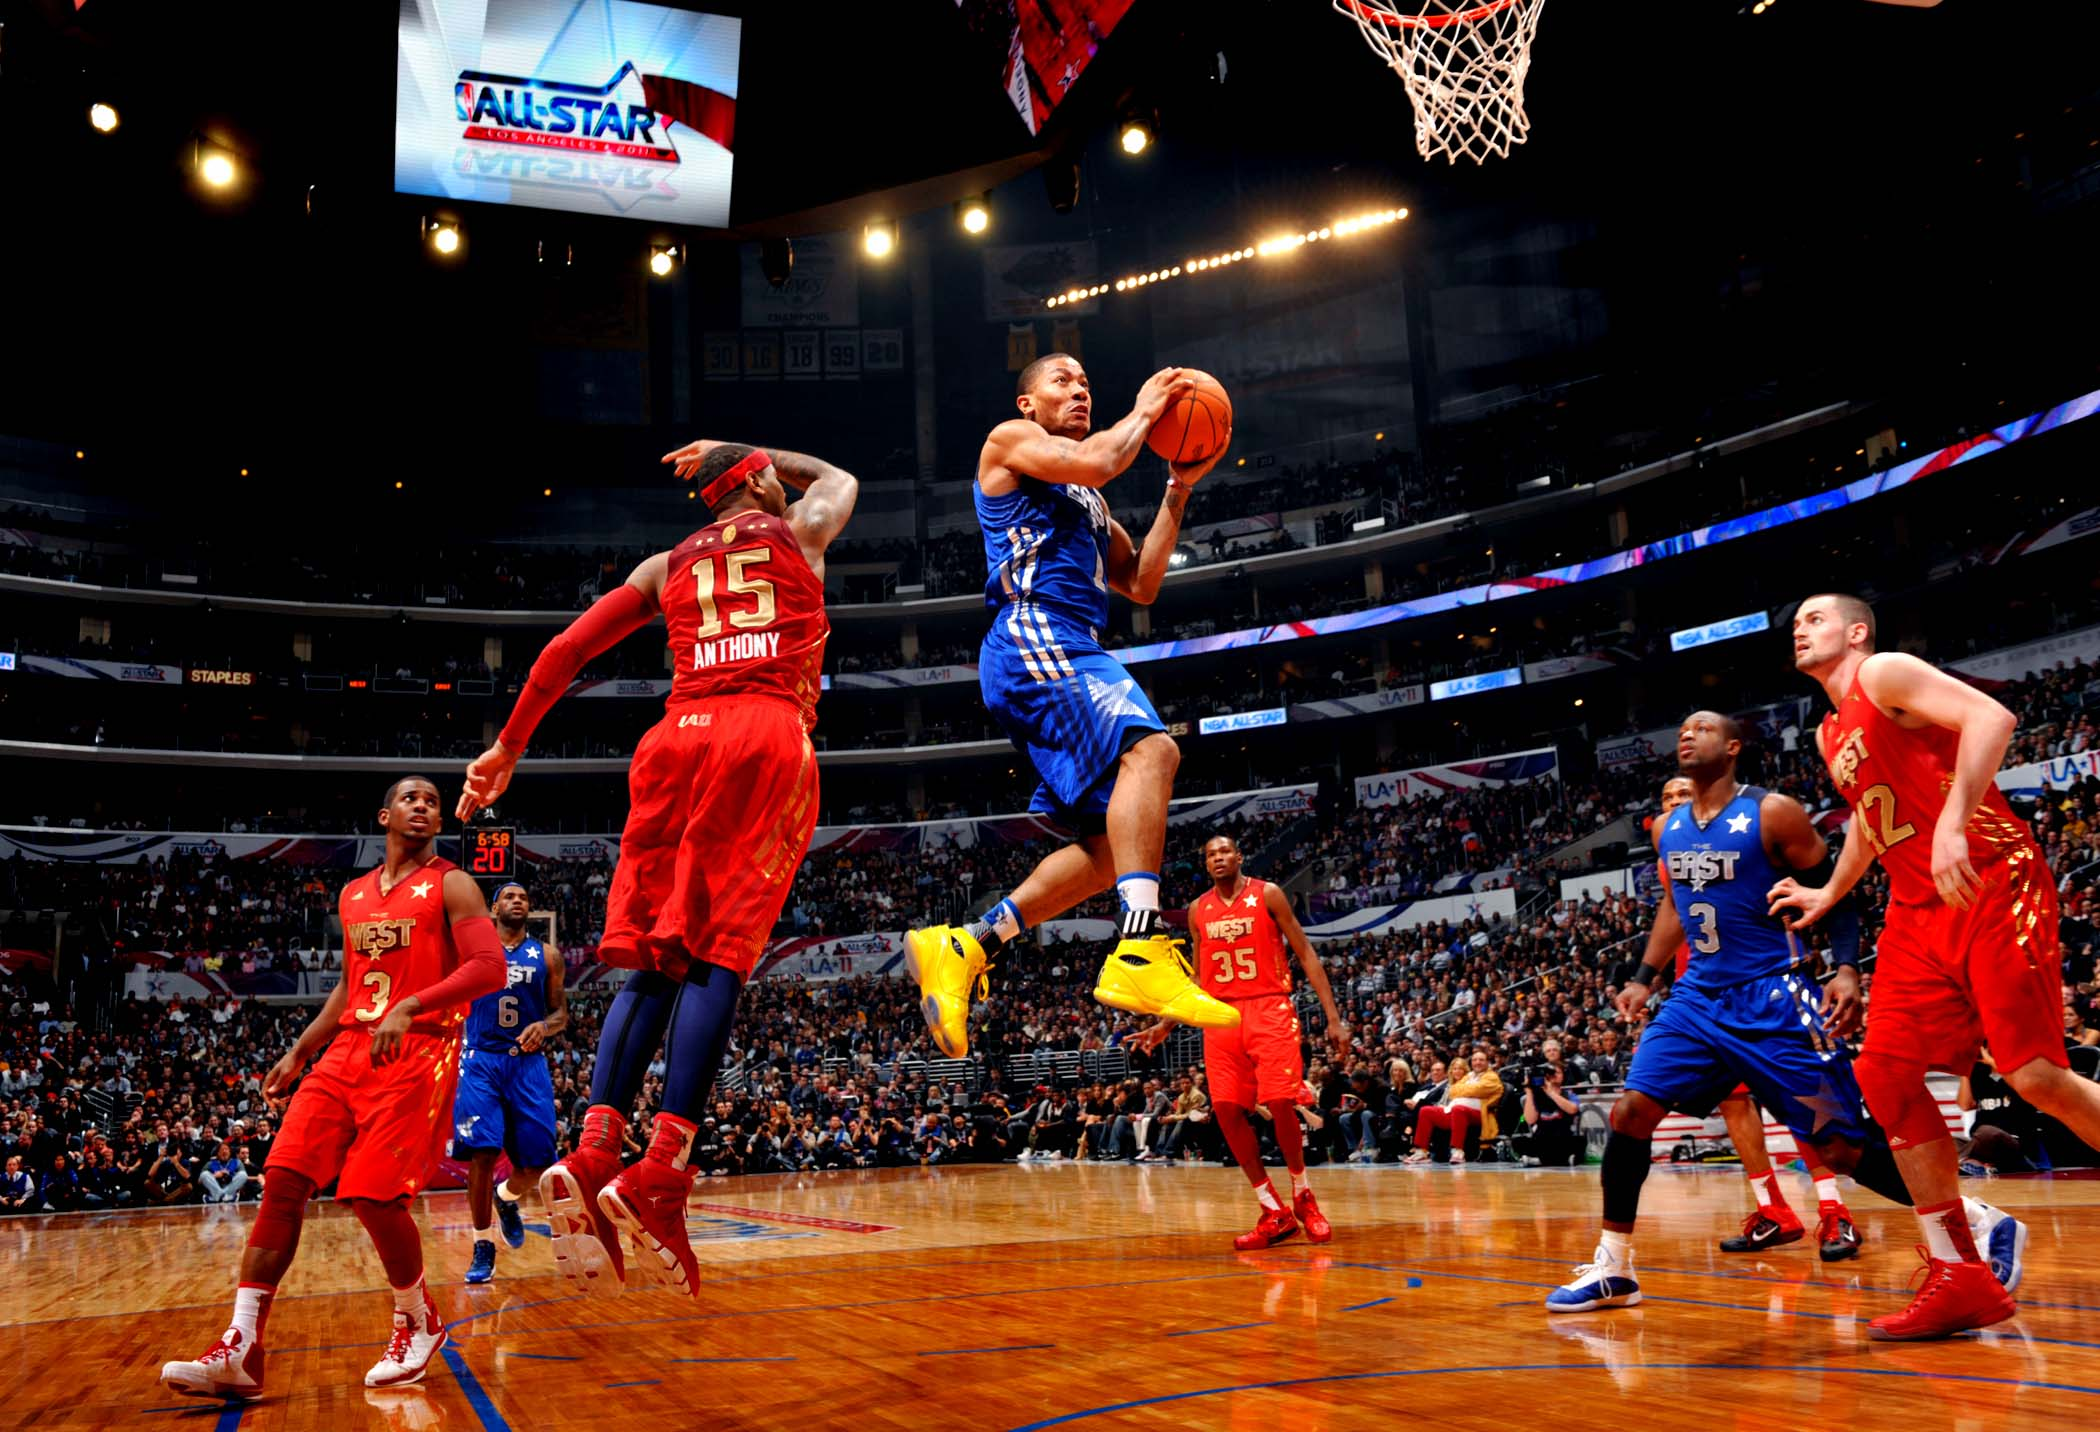 nba all star game stream nice images